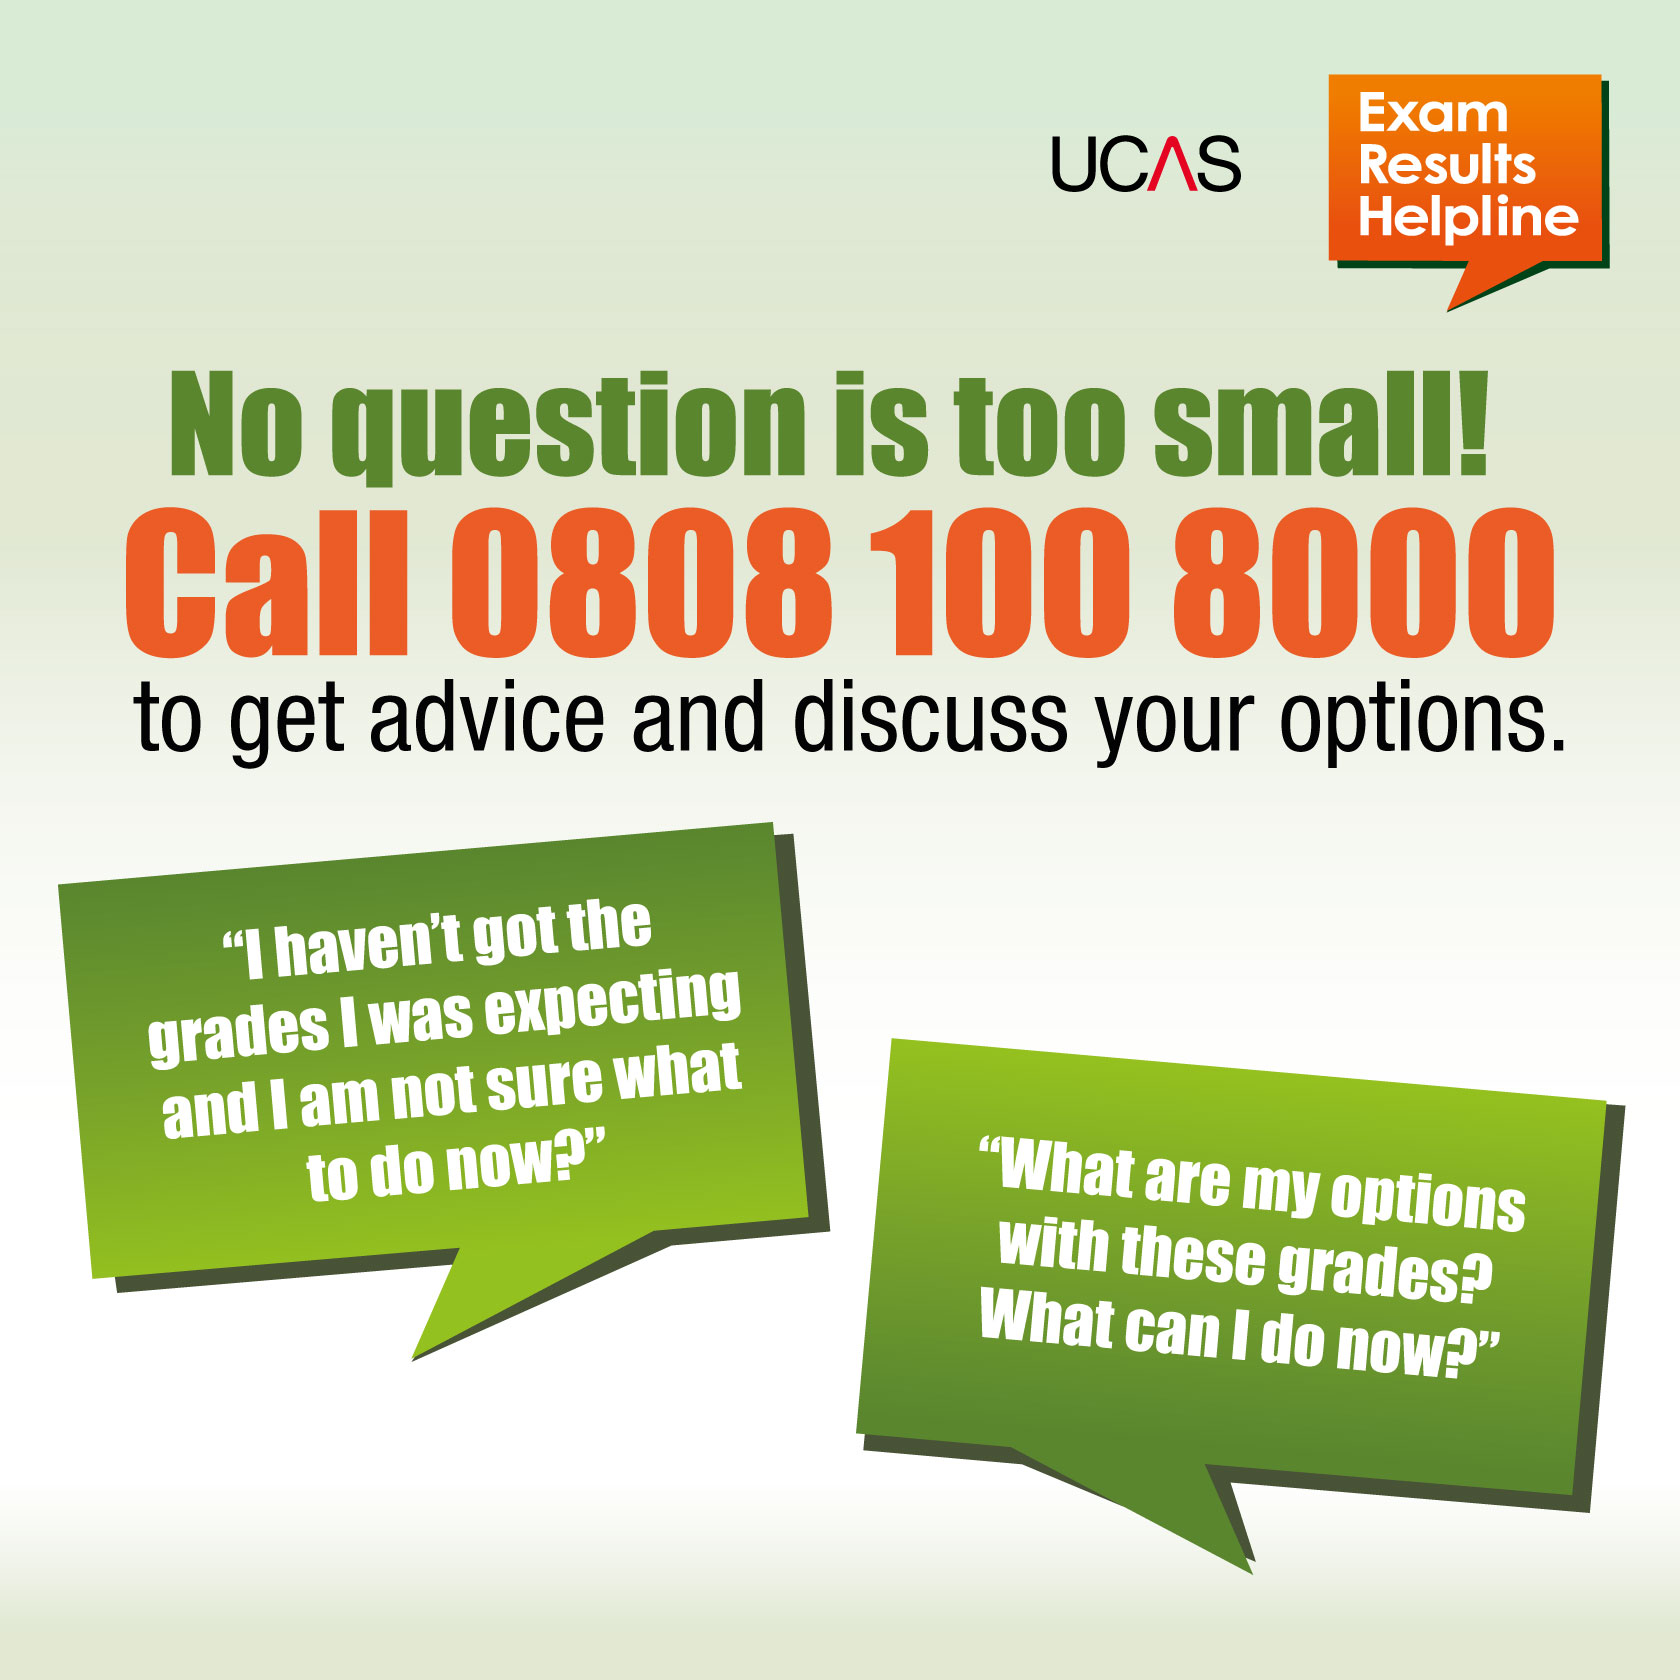 Ucas Exam Results Helpline